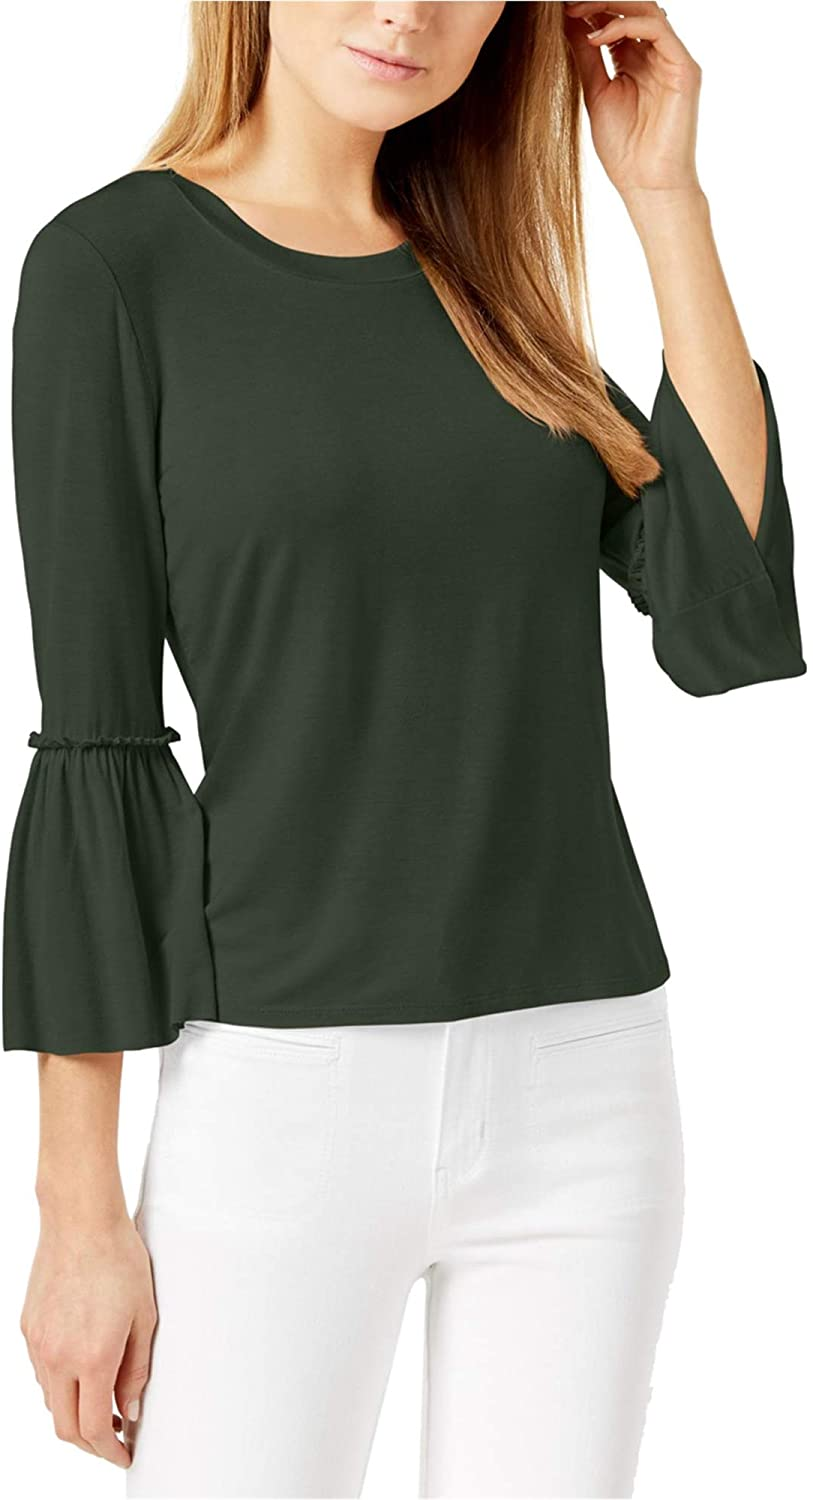 Maison Jules Womens Bell Sleeve Basic T-Shirt